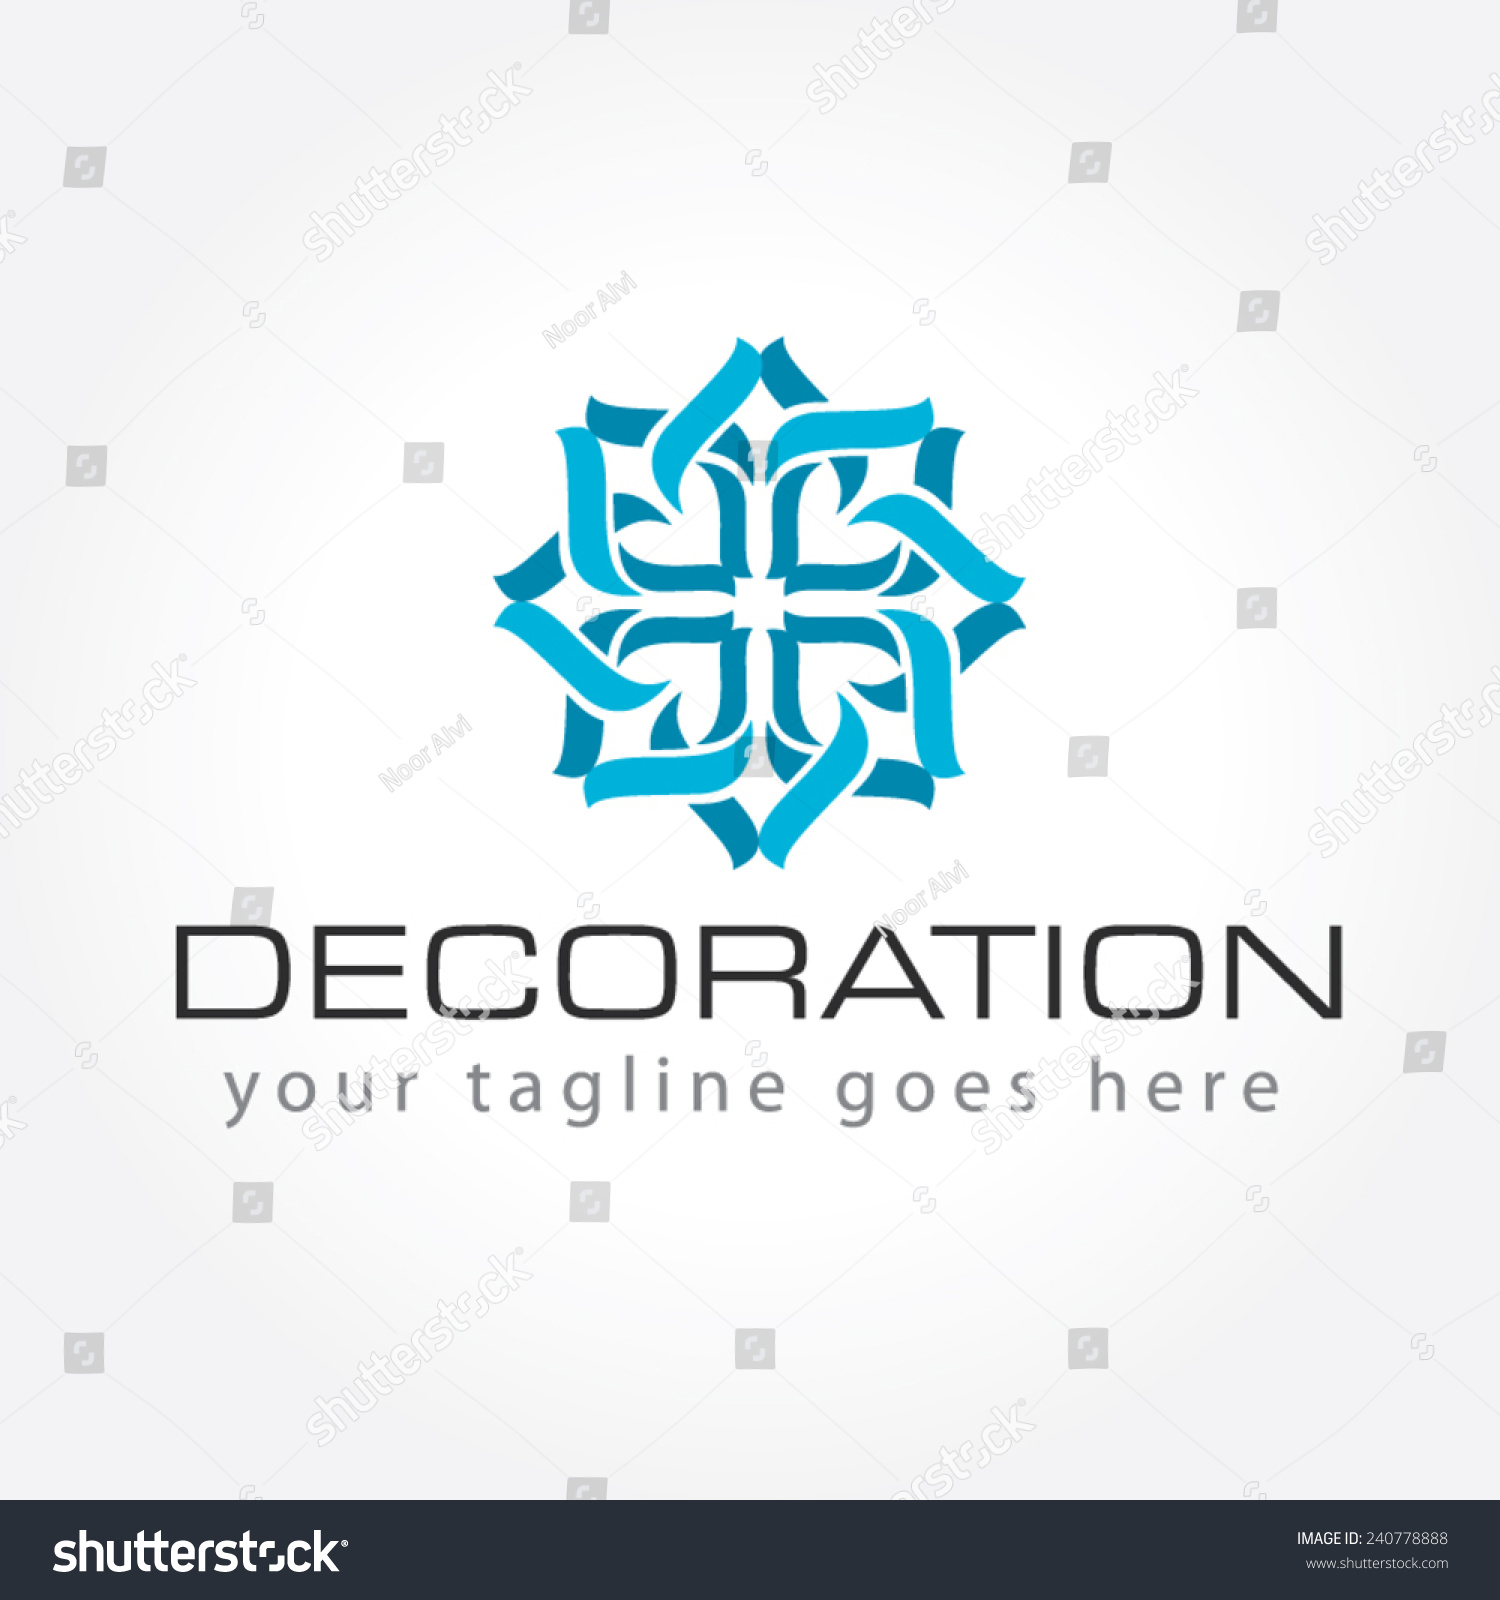 Editor de im genes y fotos en l nea shutterstock editor for Best names for interior designing firm